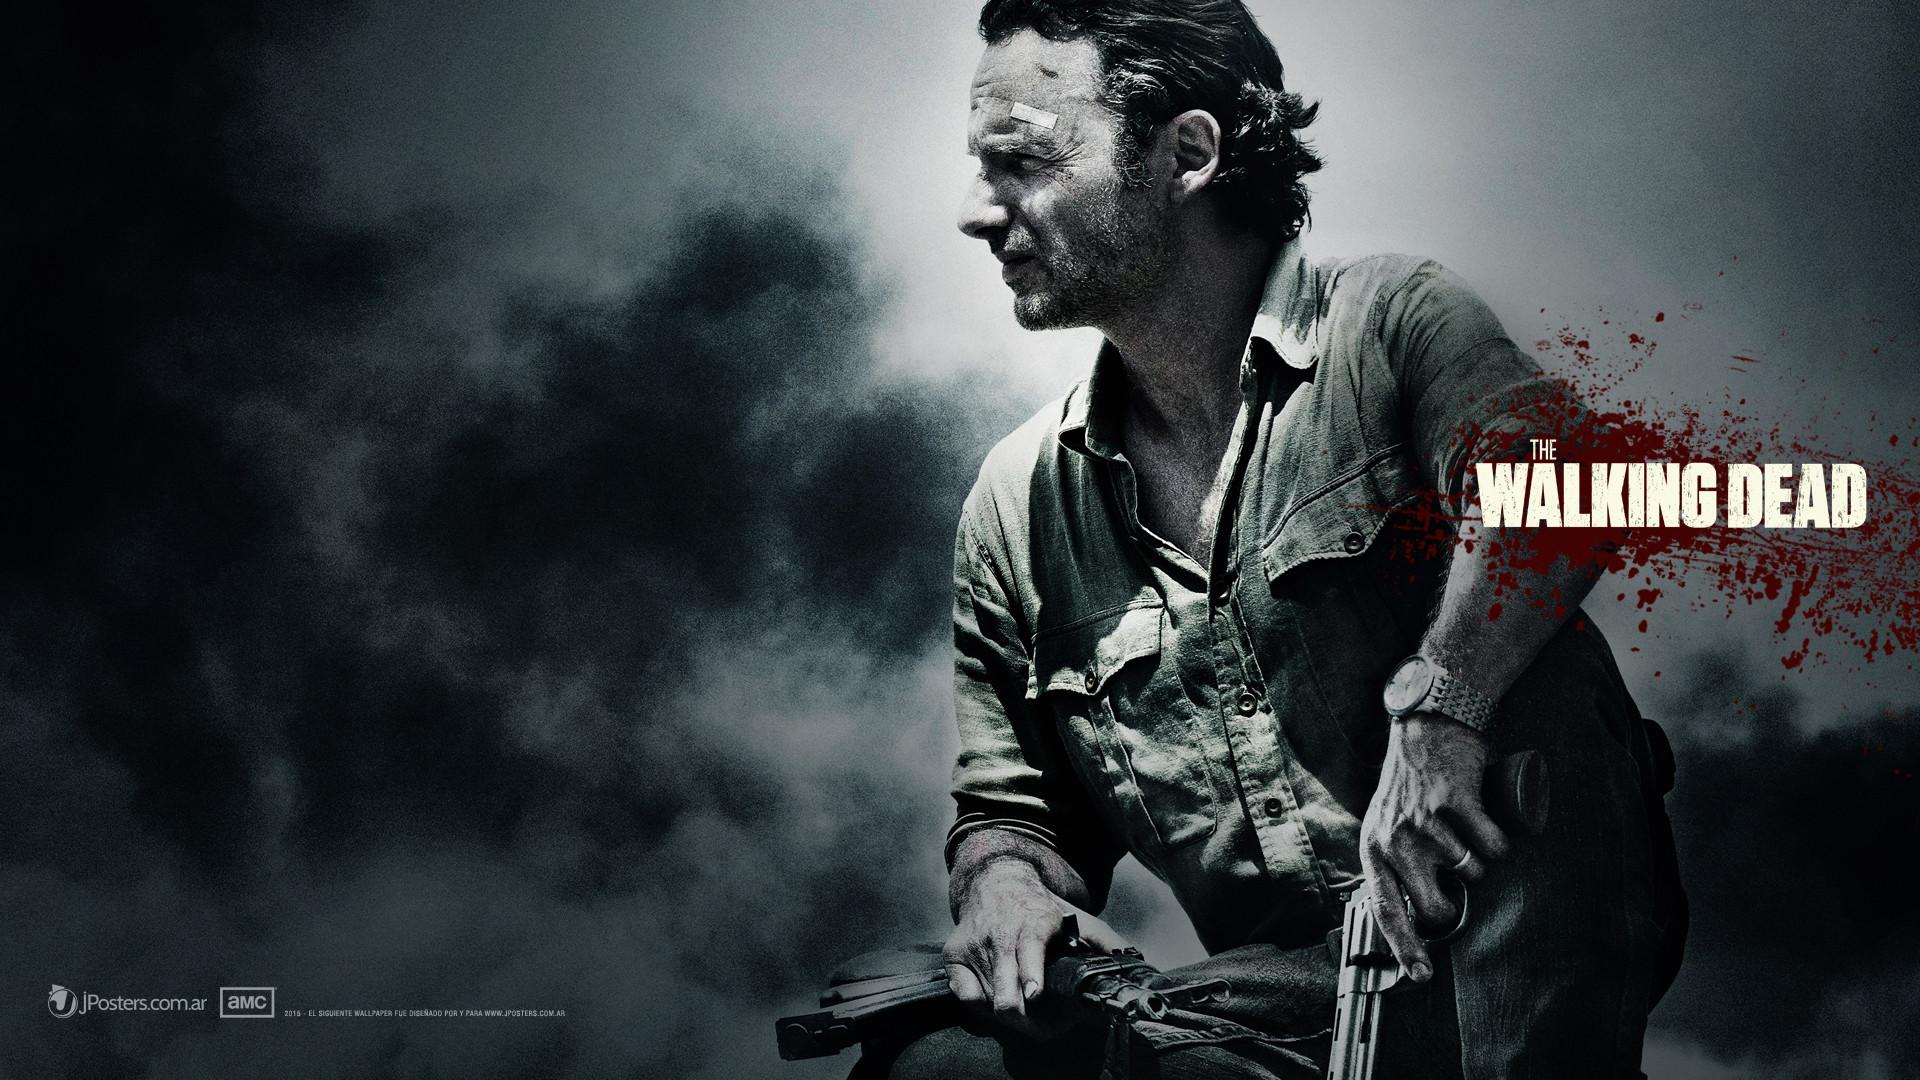 The Walking Dead Collection Wallpapers Wallpaper Cave